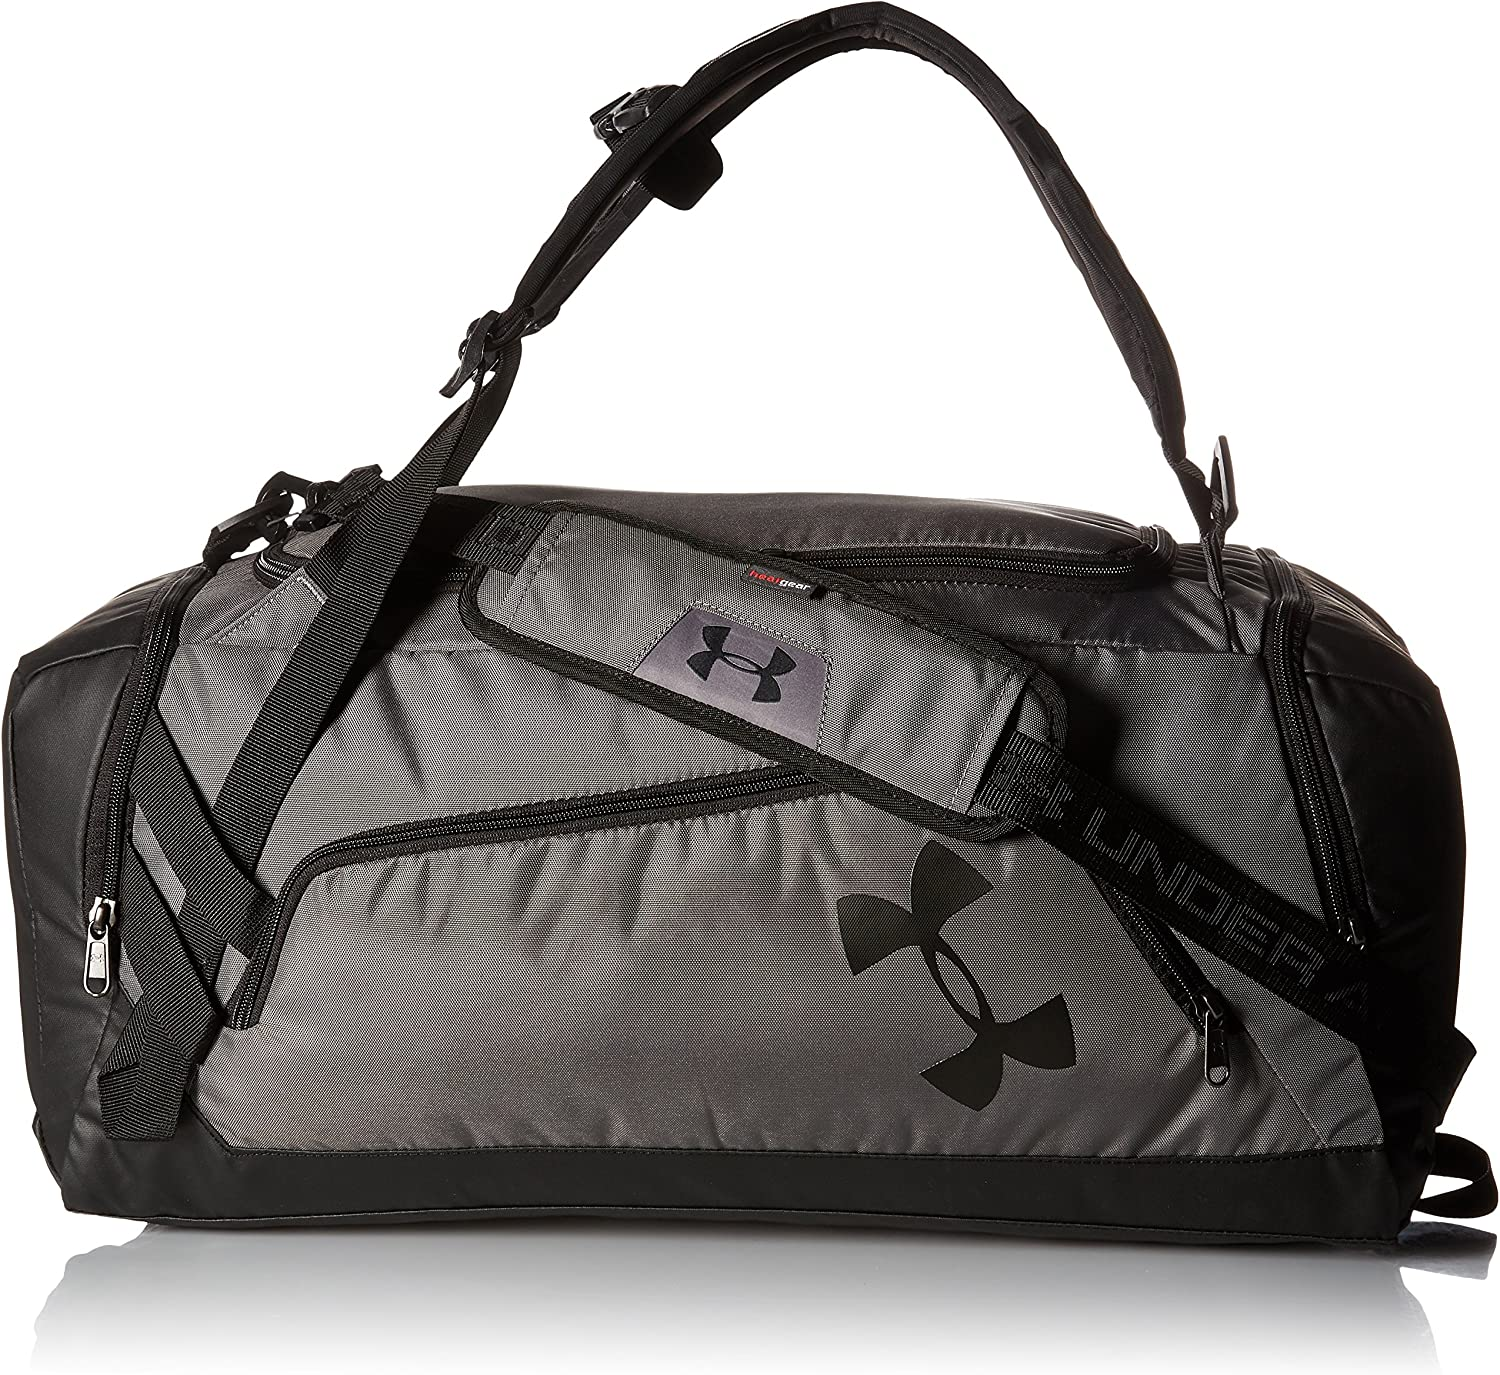 Under Armour Storm Undeniable Backpack Duffle Bag